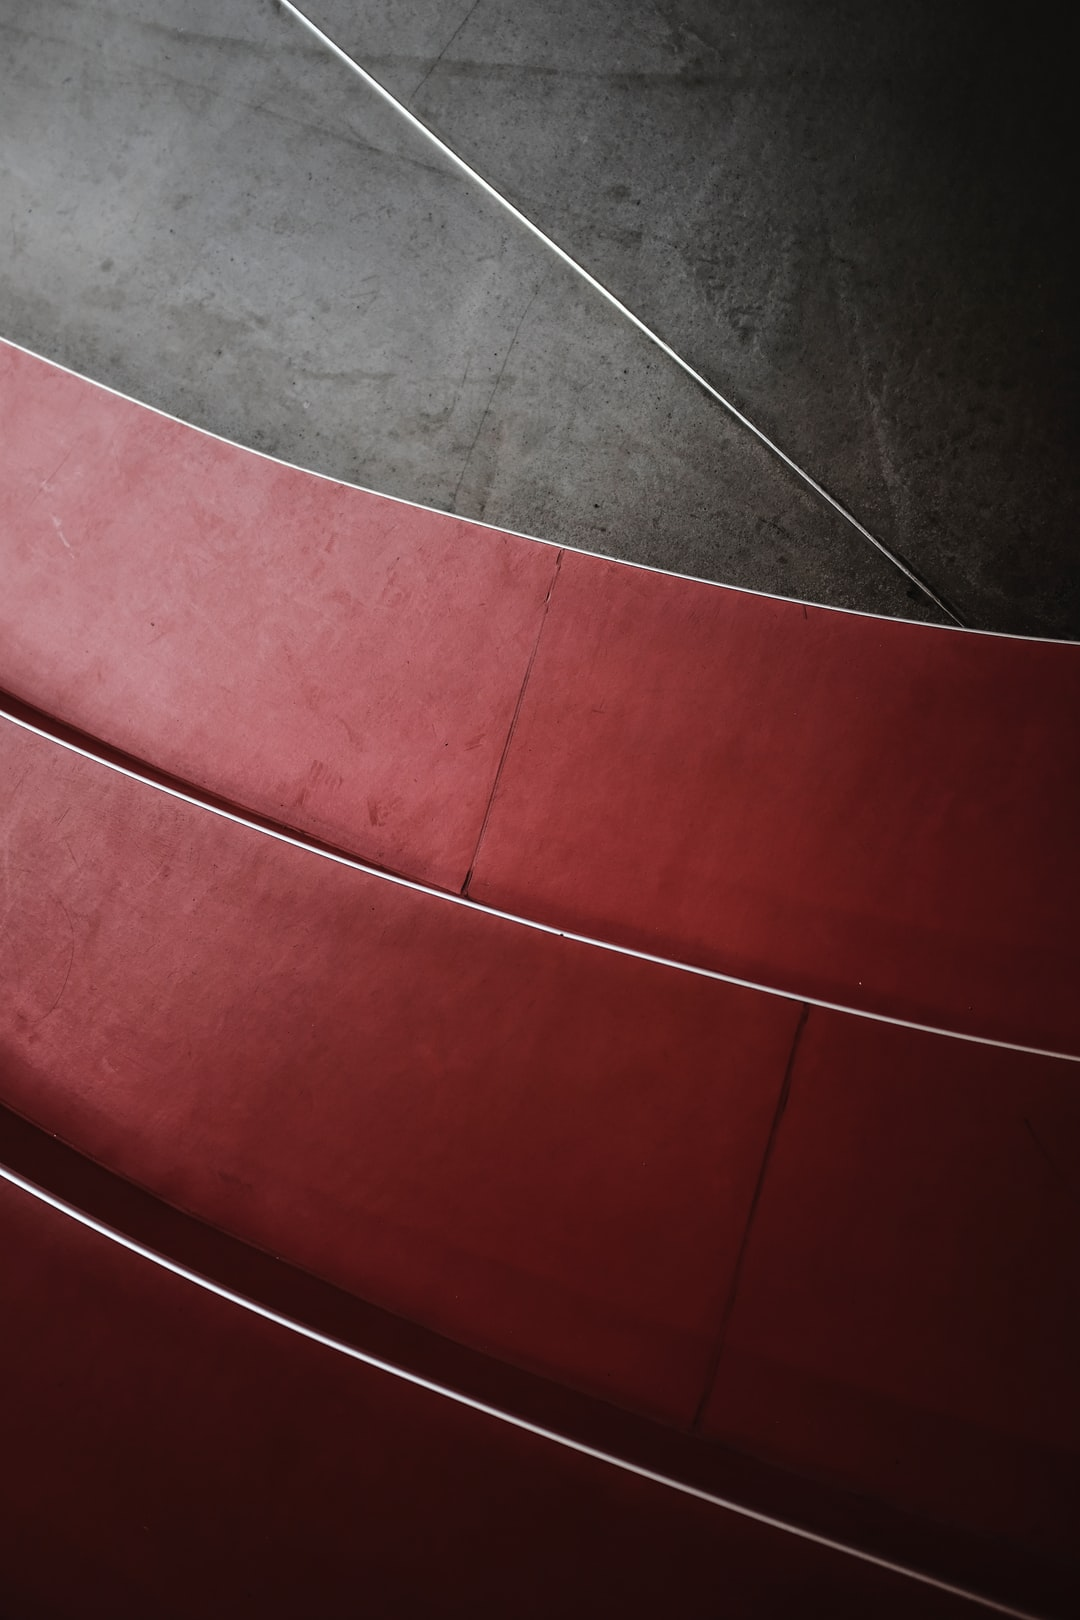 Red graphic staircase and concrete